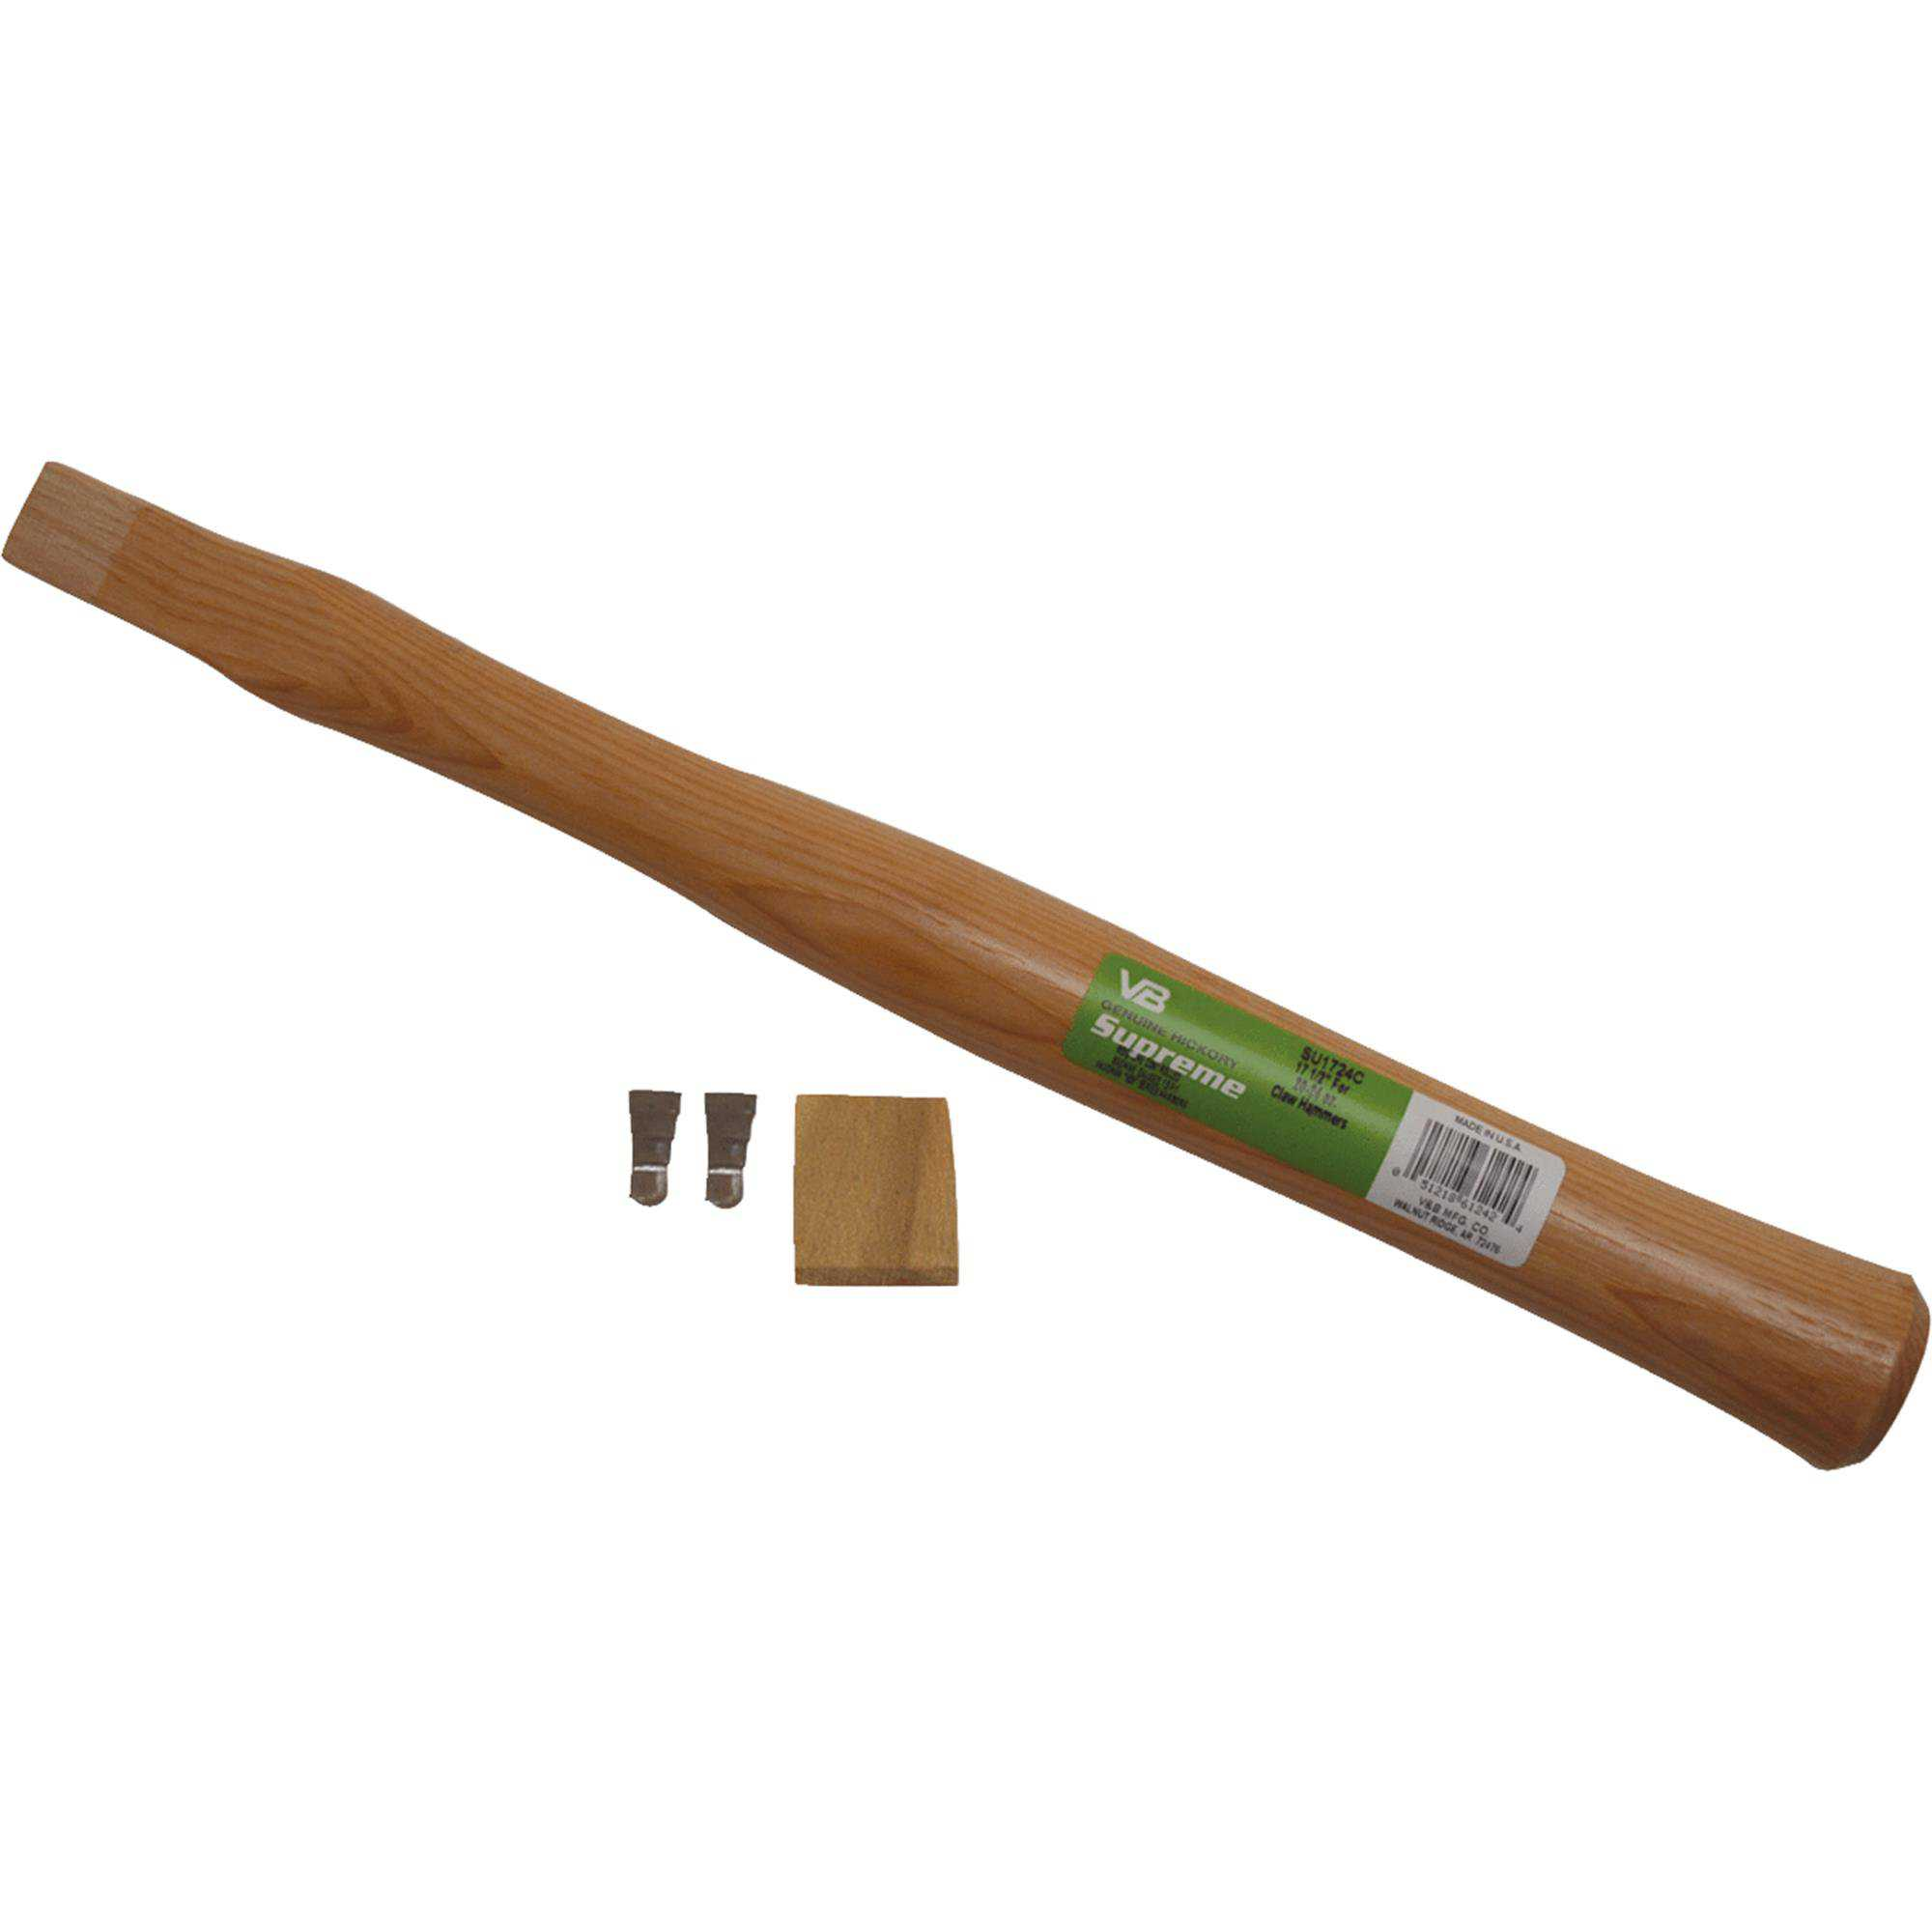 Vaughan 641-72 17.5' Wood Hatchet Replacement Handle